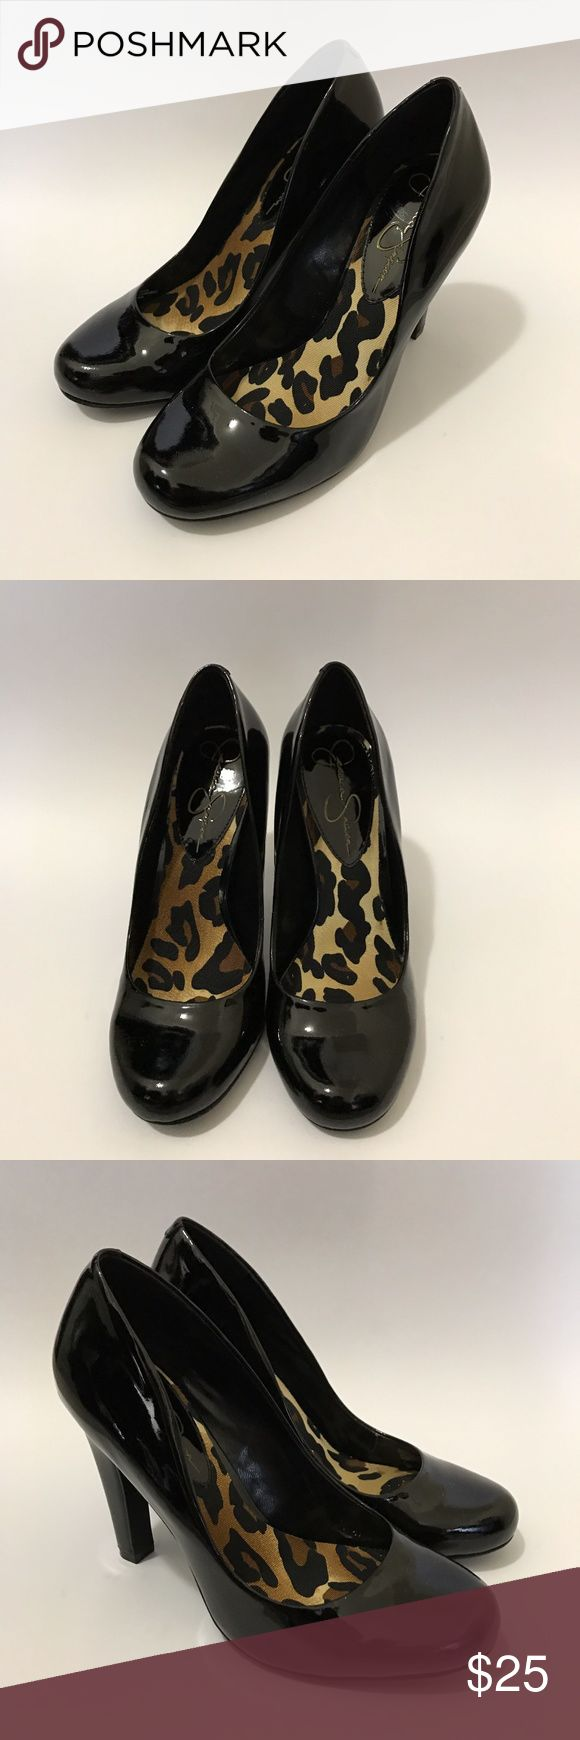 Jessica Simpsons High Heels Only worn once for my sister's interview. Perfect for semi - formal or formal occasions, and business attire. In great condition. Jessica Simpson Shoes Heels